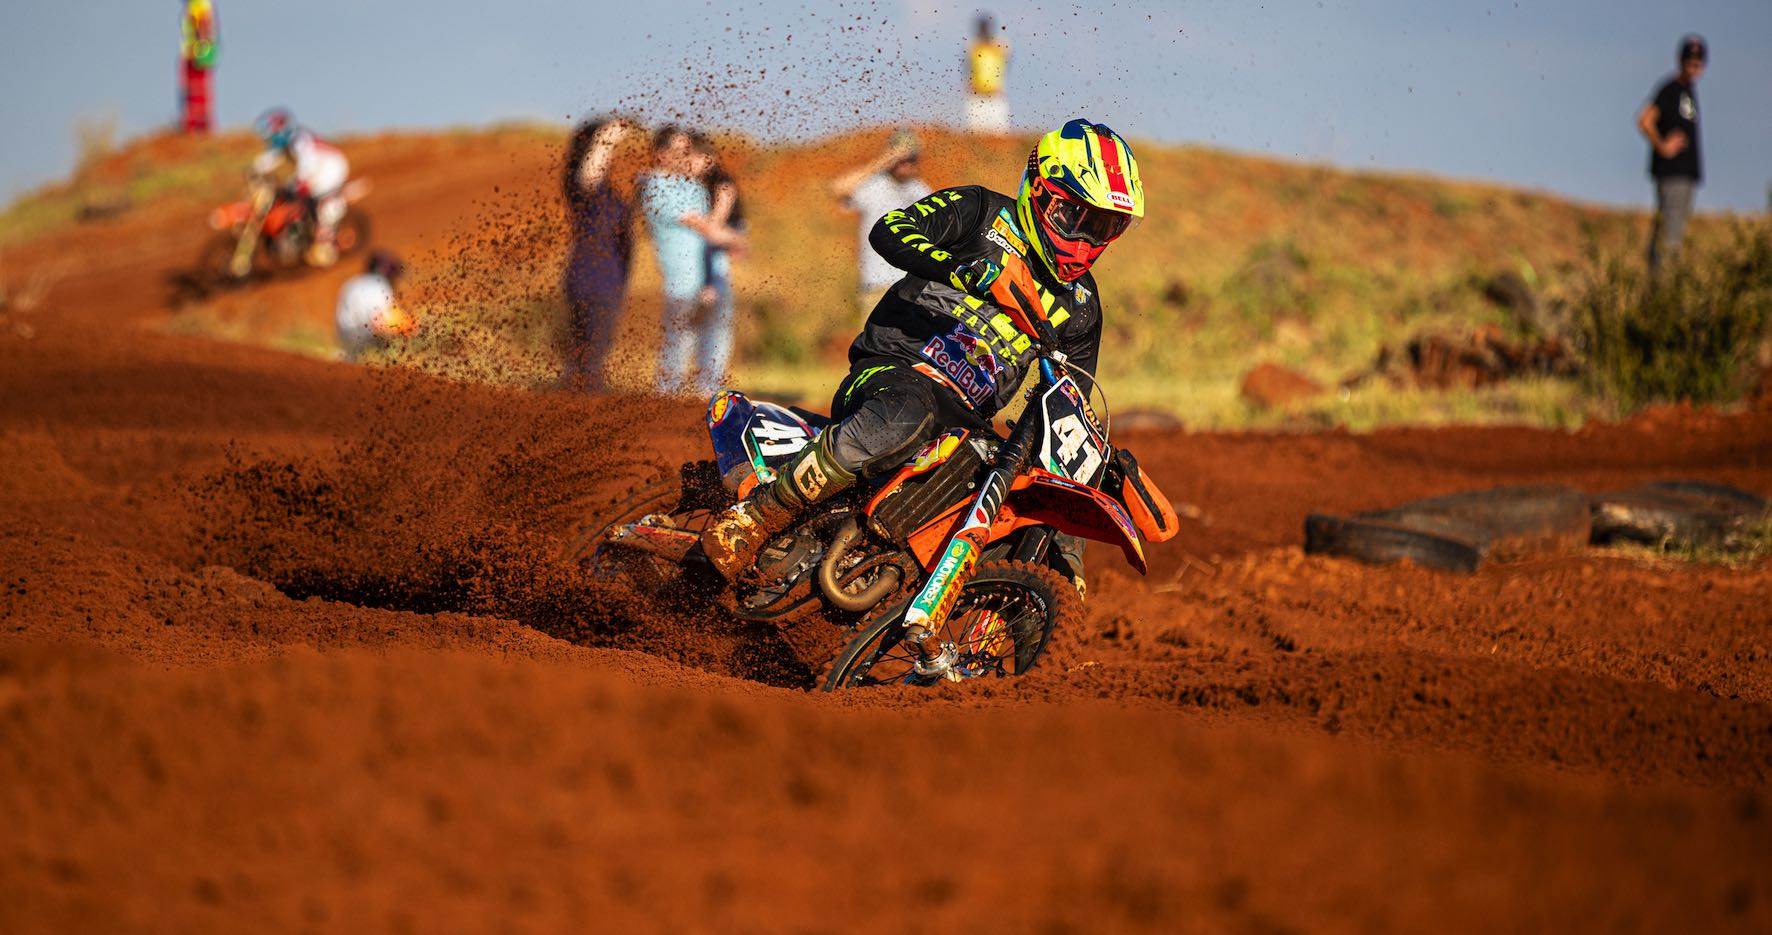 Tristan Purdon racing his way to victory at Round 3 of the SA Motocross Nationals